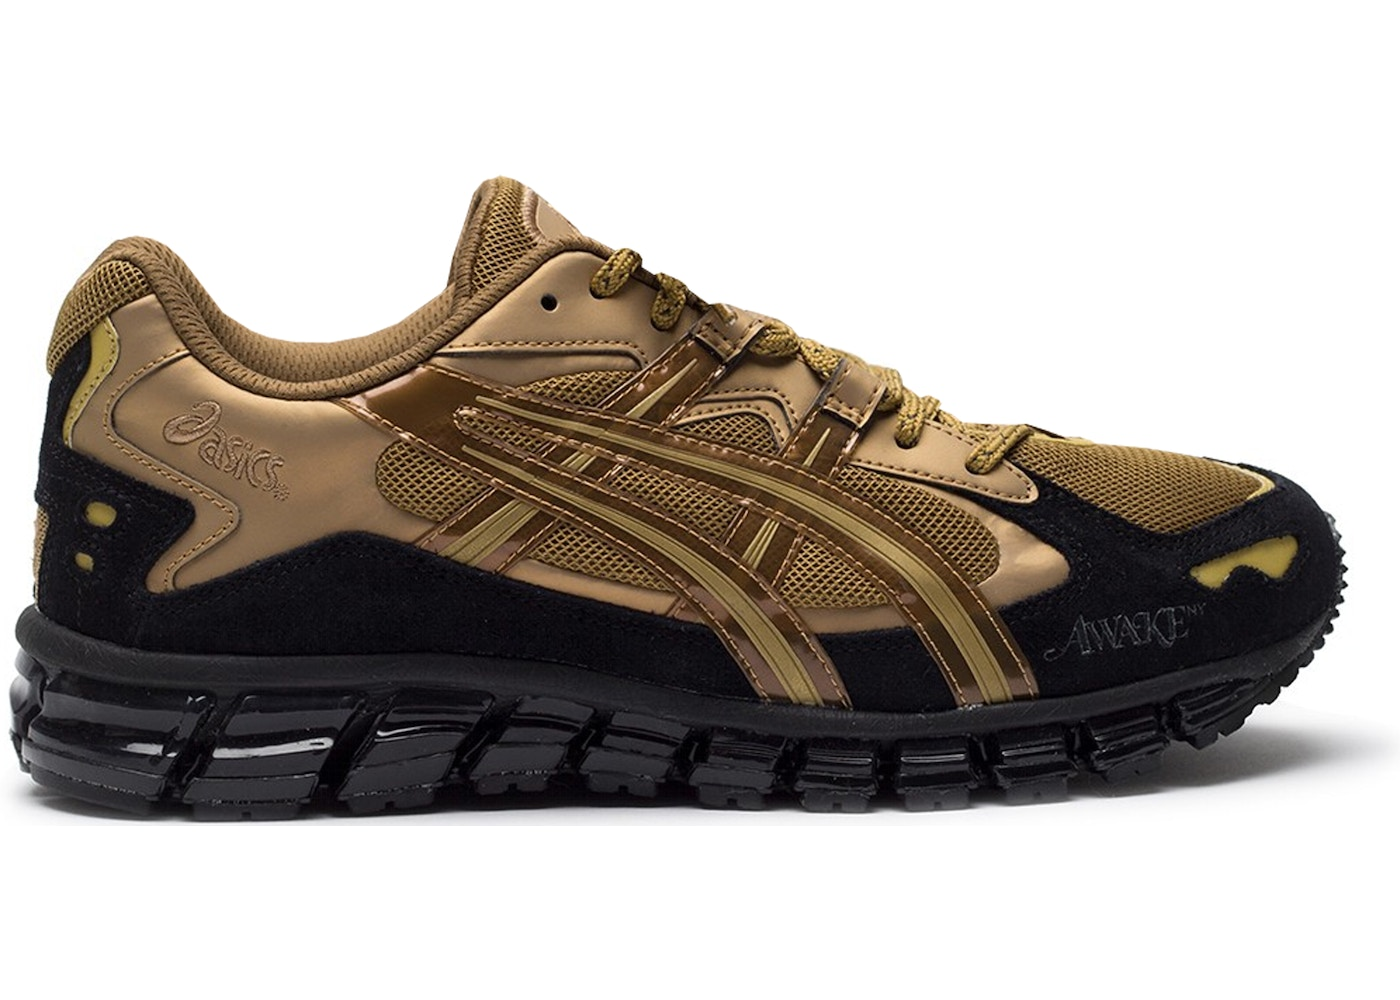 official photos f03f1 7bd44 ASICS Size 13 Shoes - Release Date